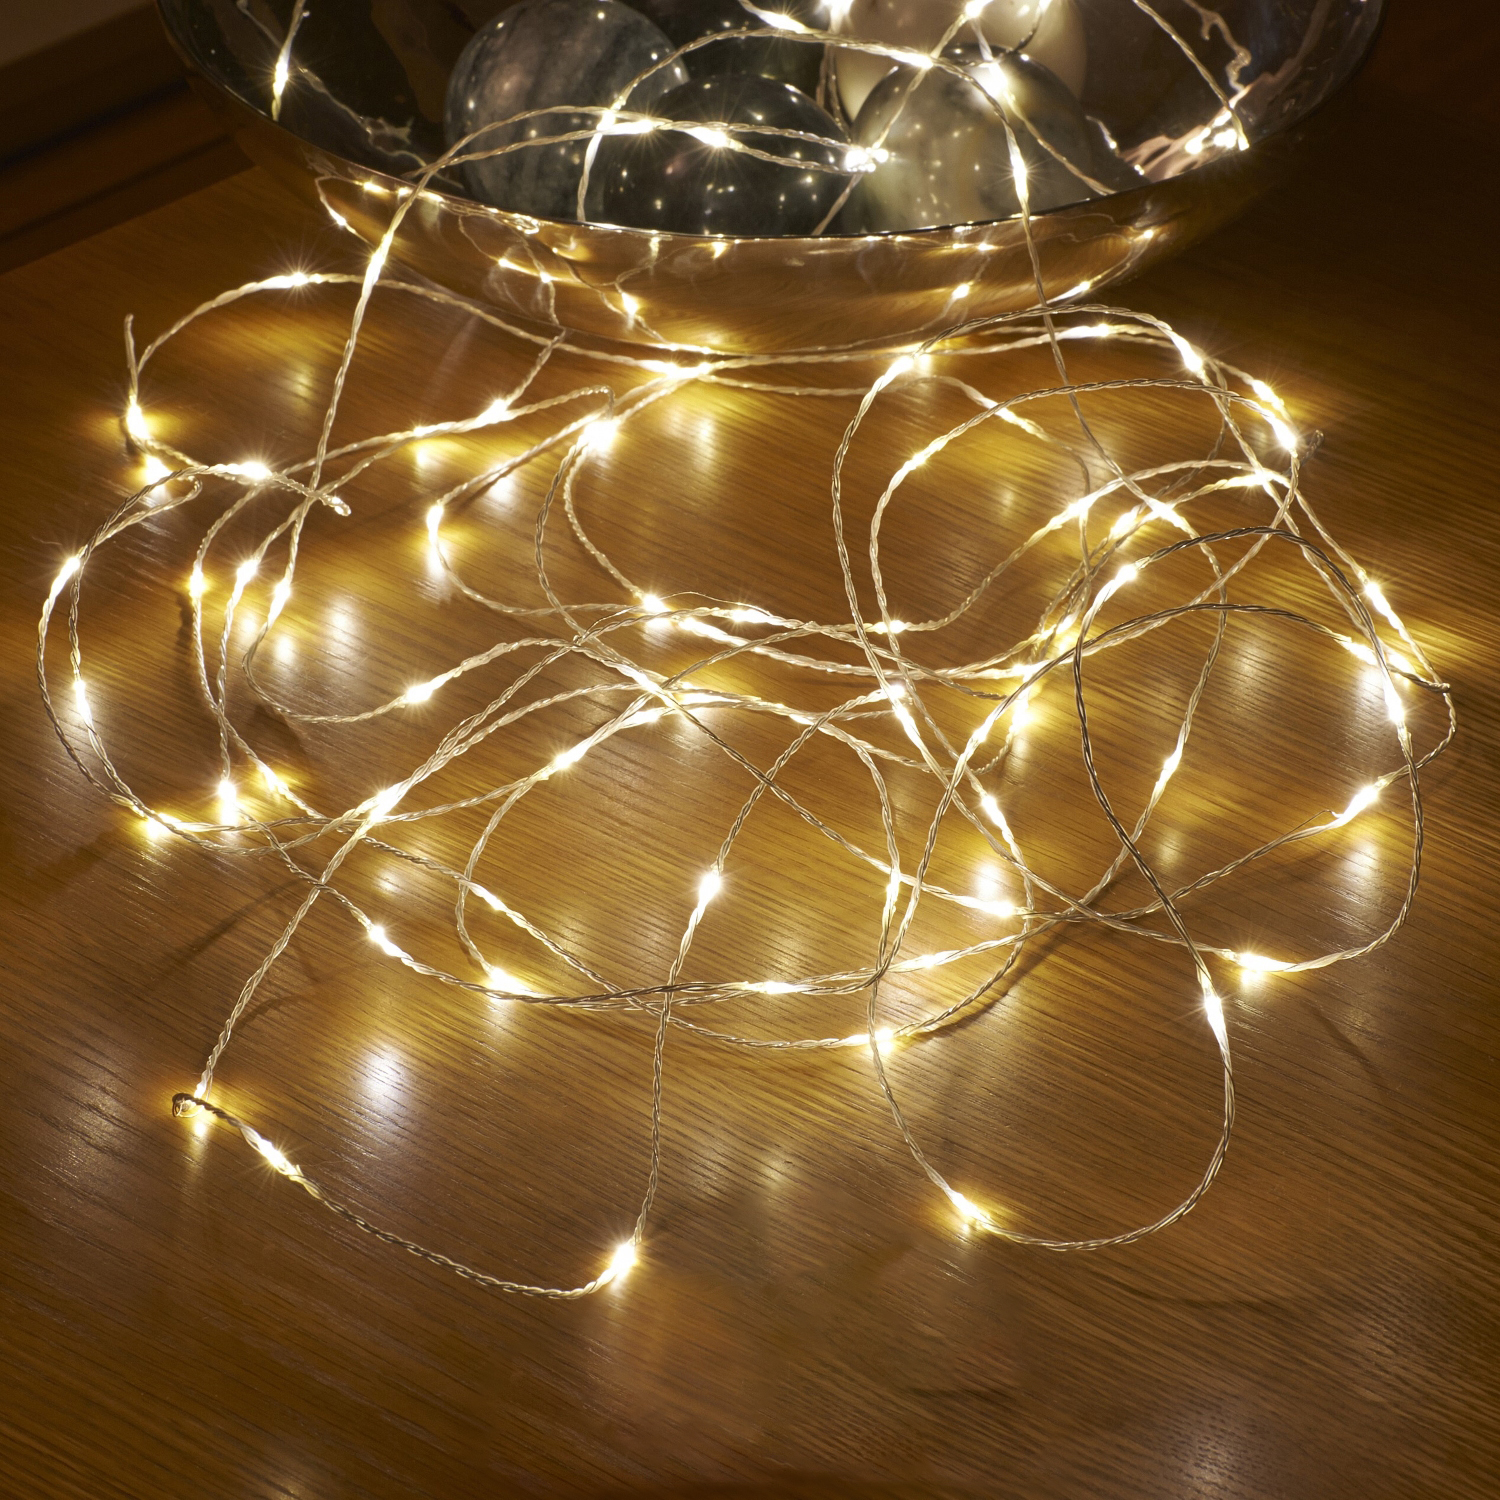 Led String Lights Indoor Battery : Micro LED String Lights - Battery Operated - Remote Controlled - Outdoor - 5M - Auraglow LED ...